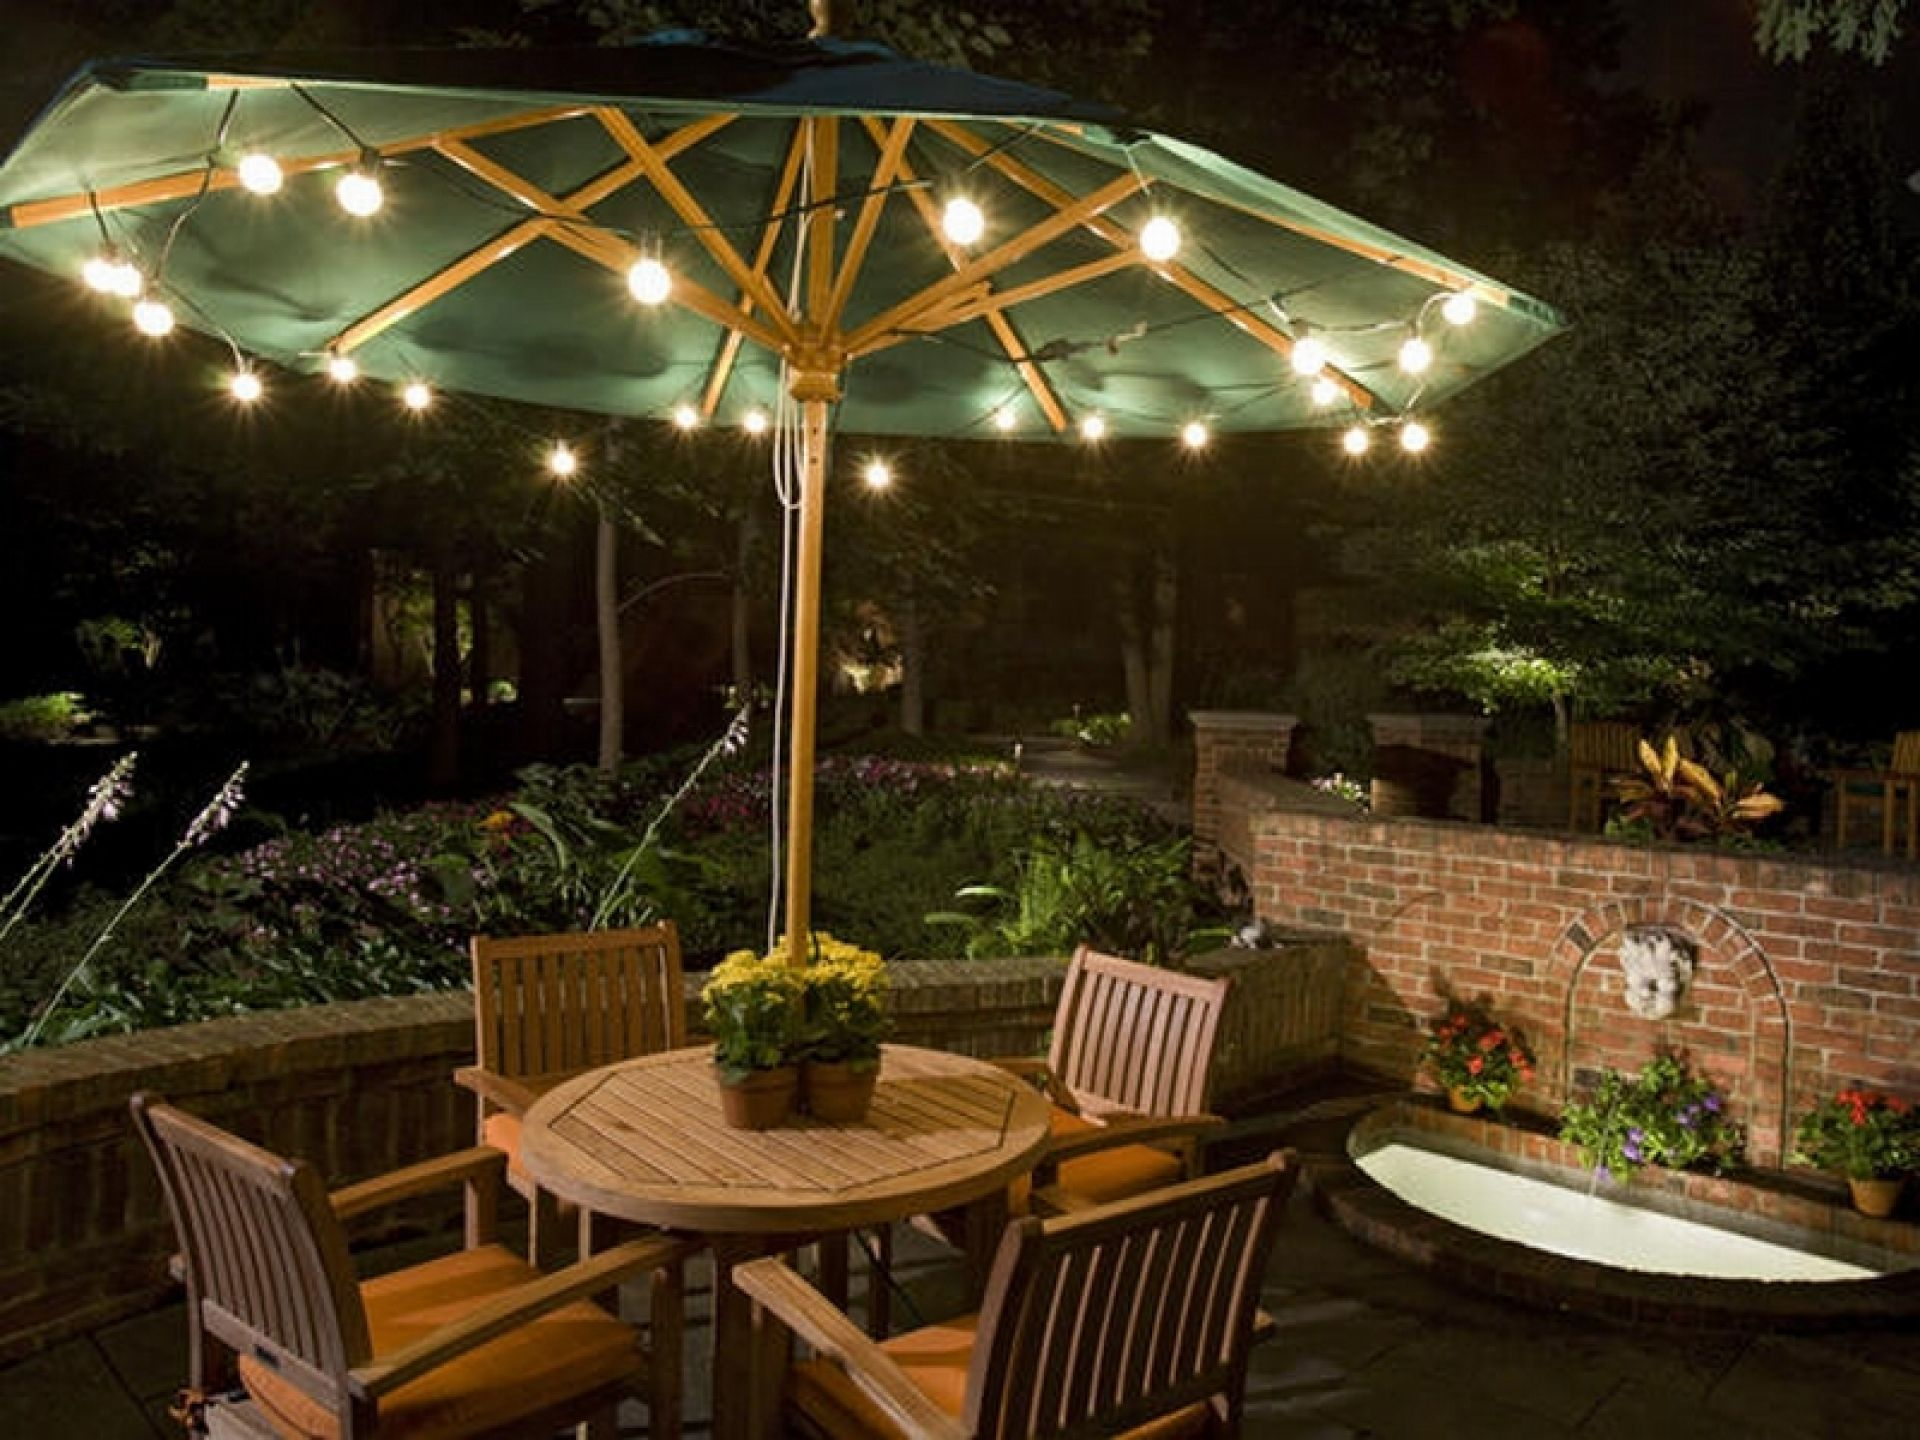 decoration outdoor exotic small patio ideas with bulb lighting